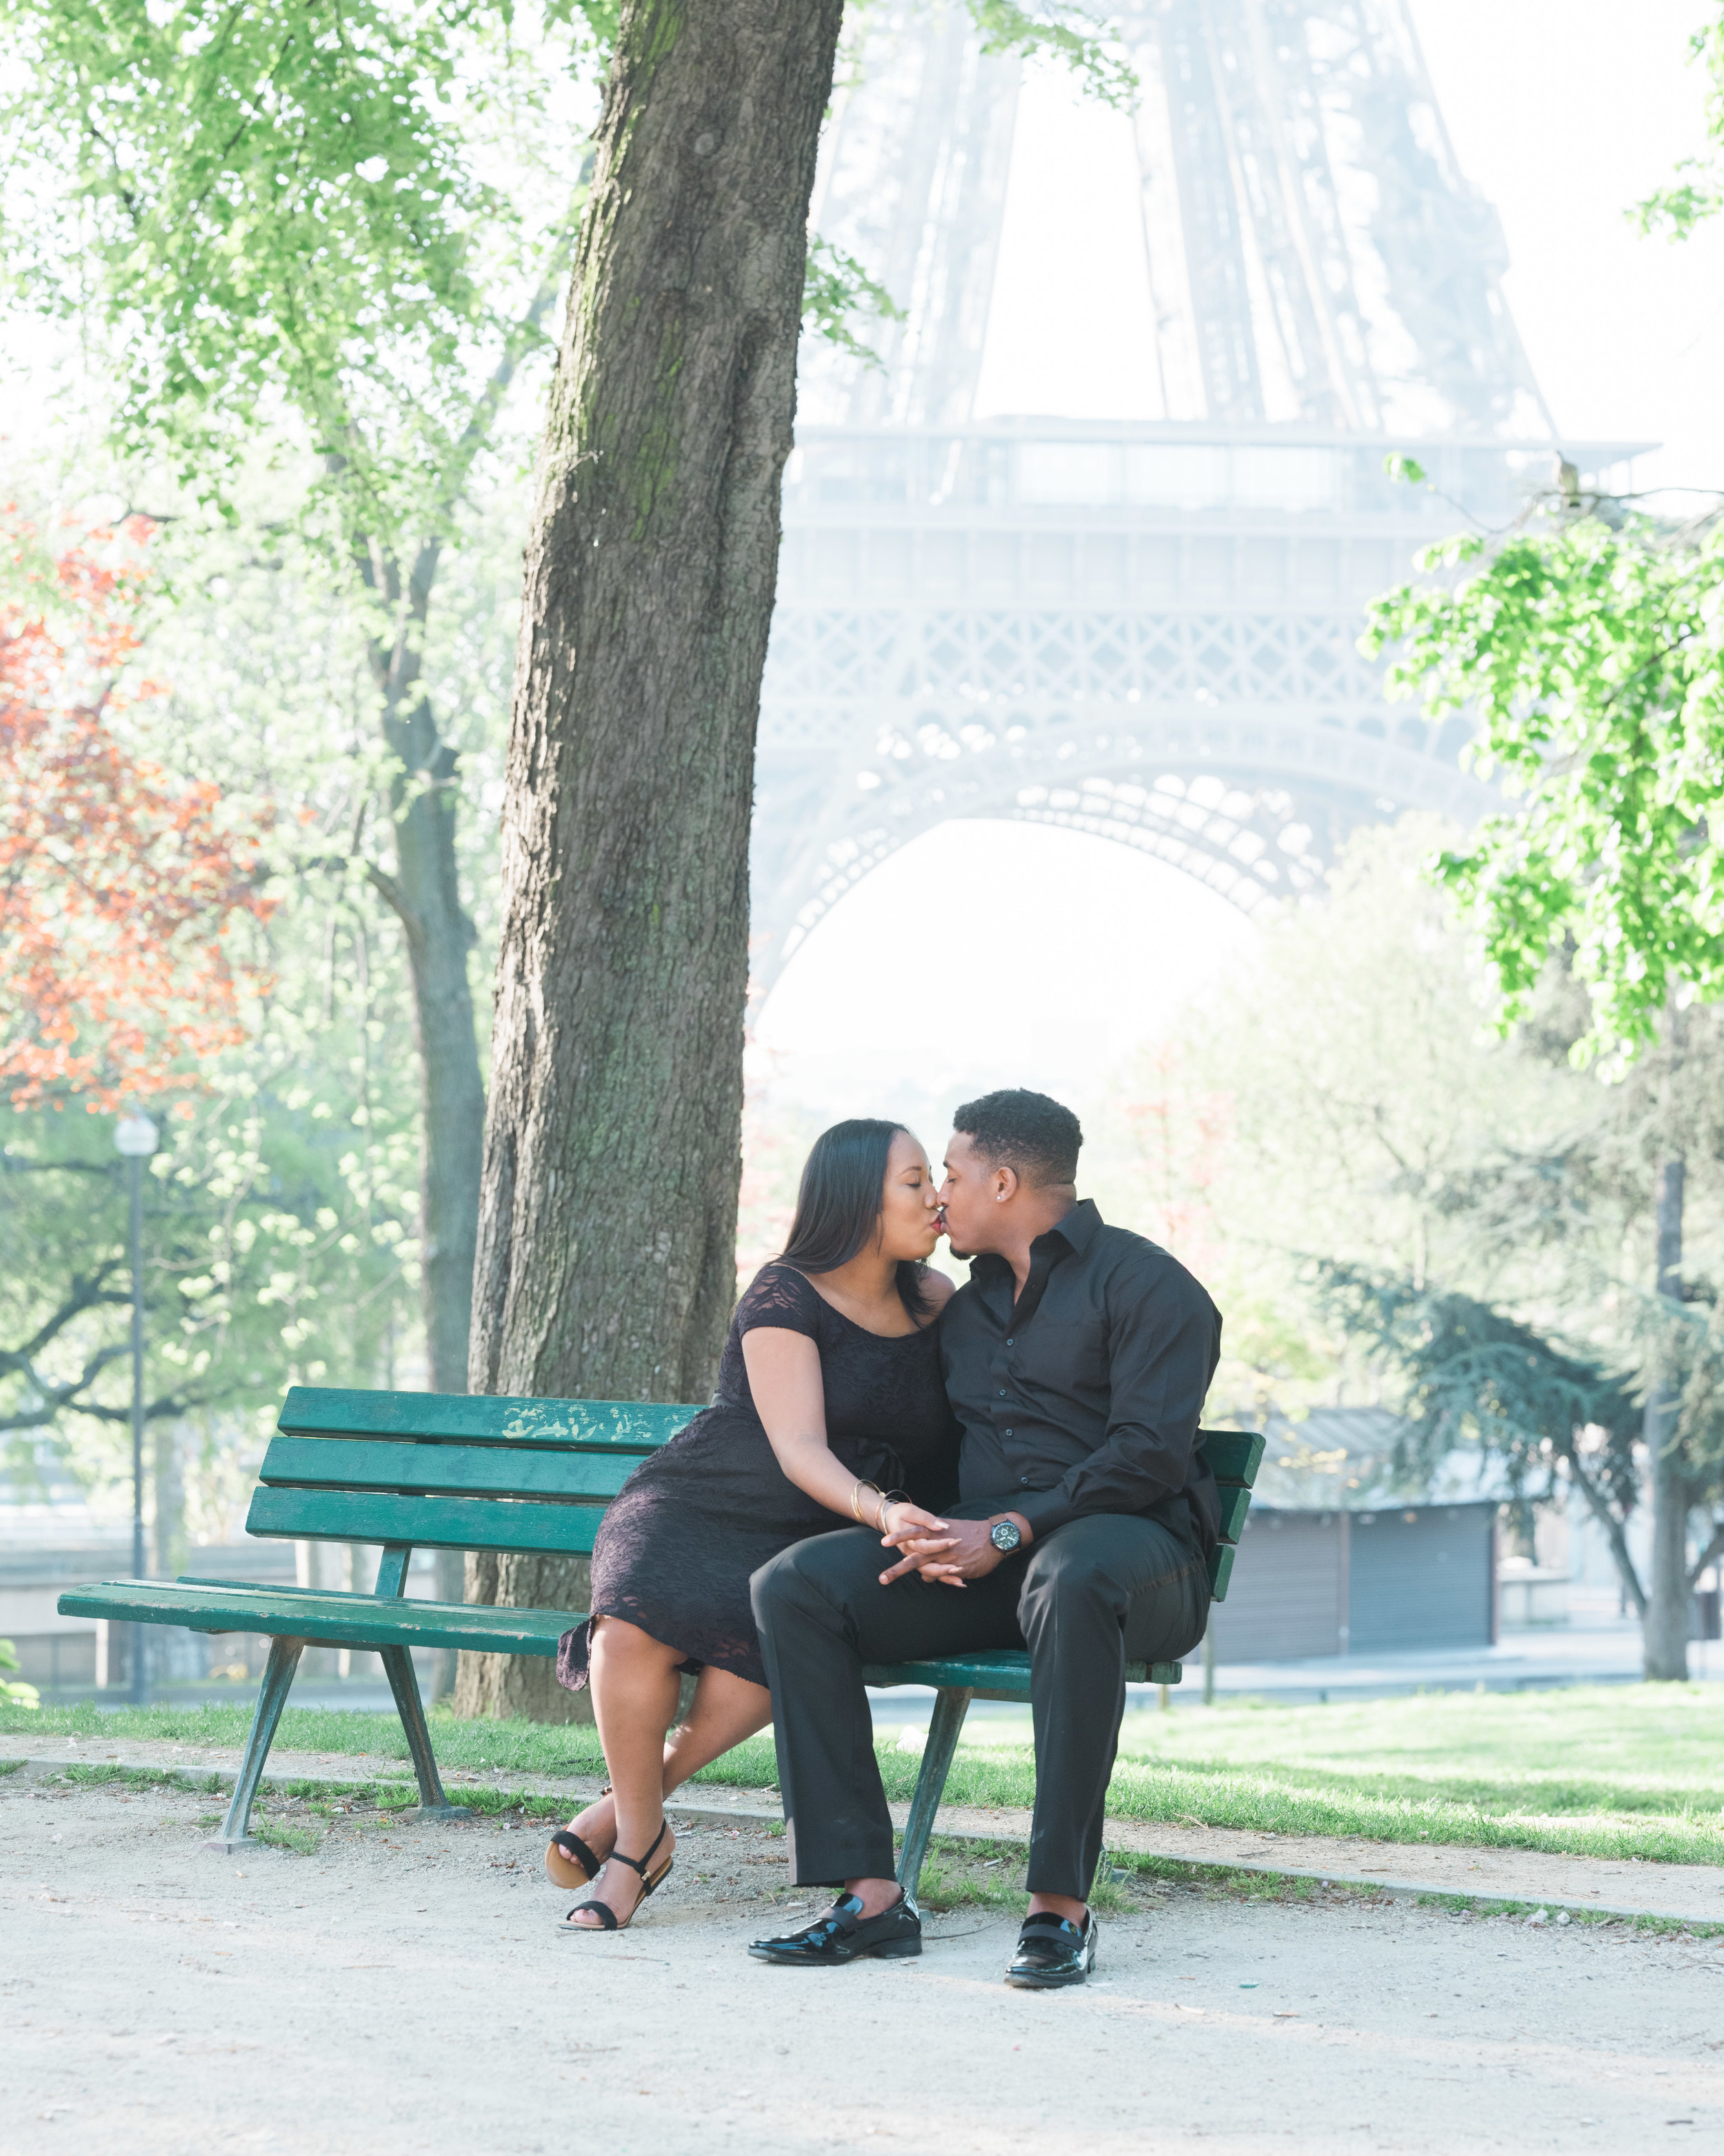 Loving and charming expectant parents photo shoot at the Eiffel Tower